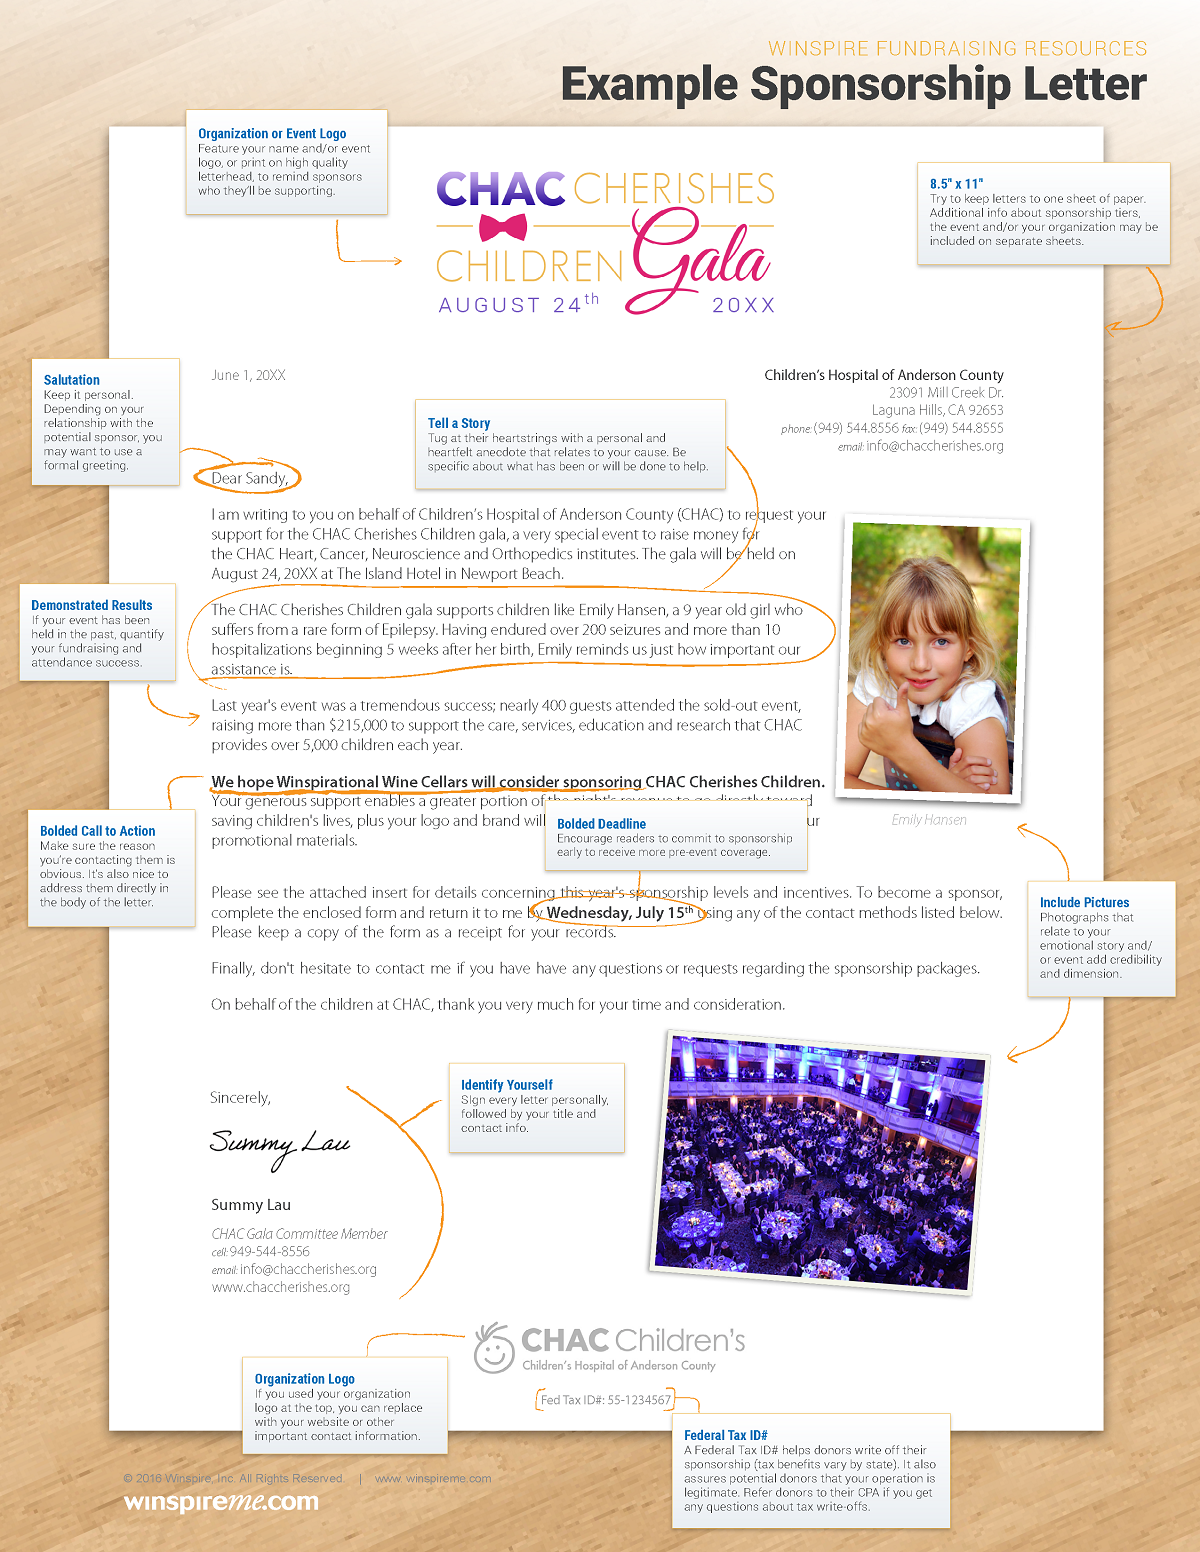 10 easy steps to effective sponsorship request letters free kit diagram sneak peek circle with pictureg spiritdancerdesigns Image collections